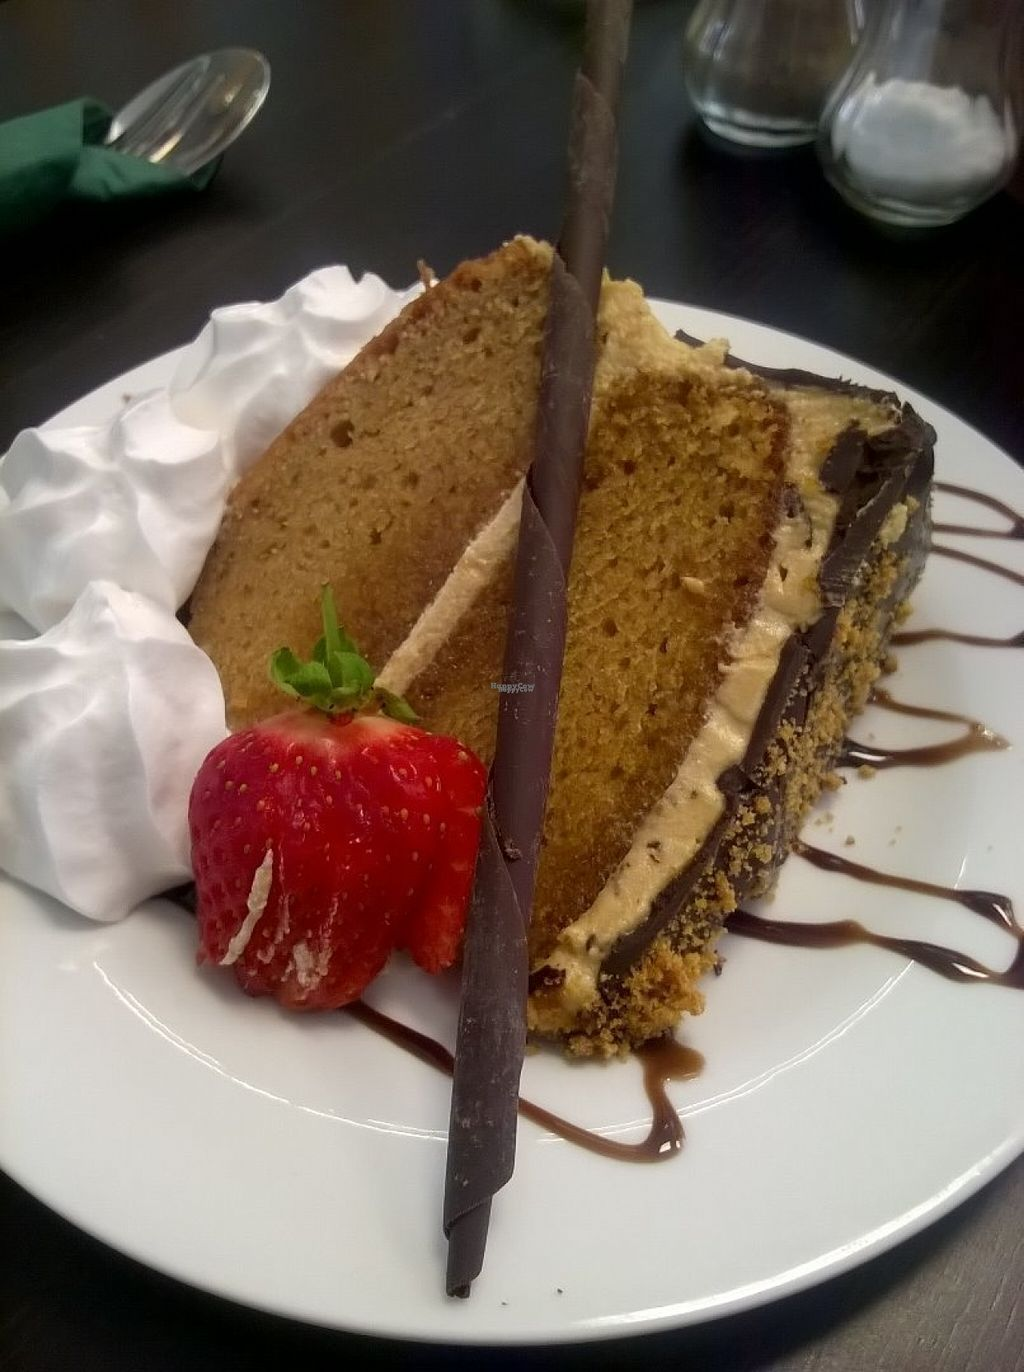 """Photo of The Green Room  by <a href=""""/members/profile/deadpledge"""">deadpledge</a> <br/>Vegan salted caramel cake with cream <br/> August 9, 2016  - <a href='/contact/abuse/image/73773/167257'>Report</a>"""